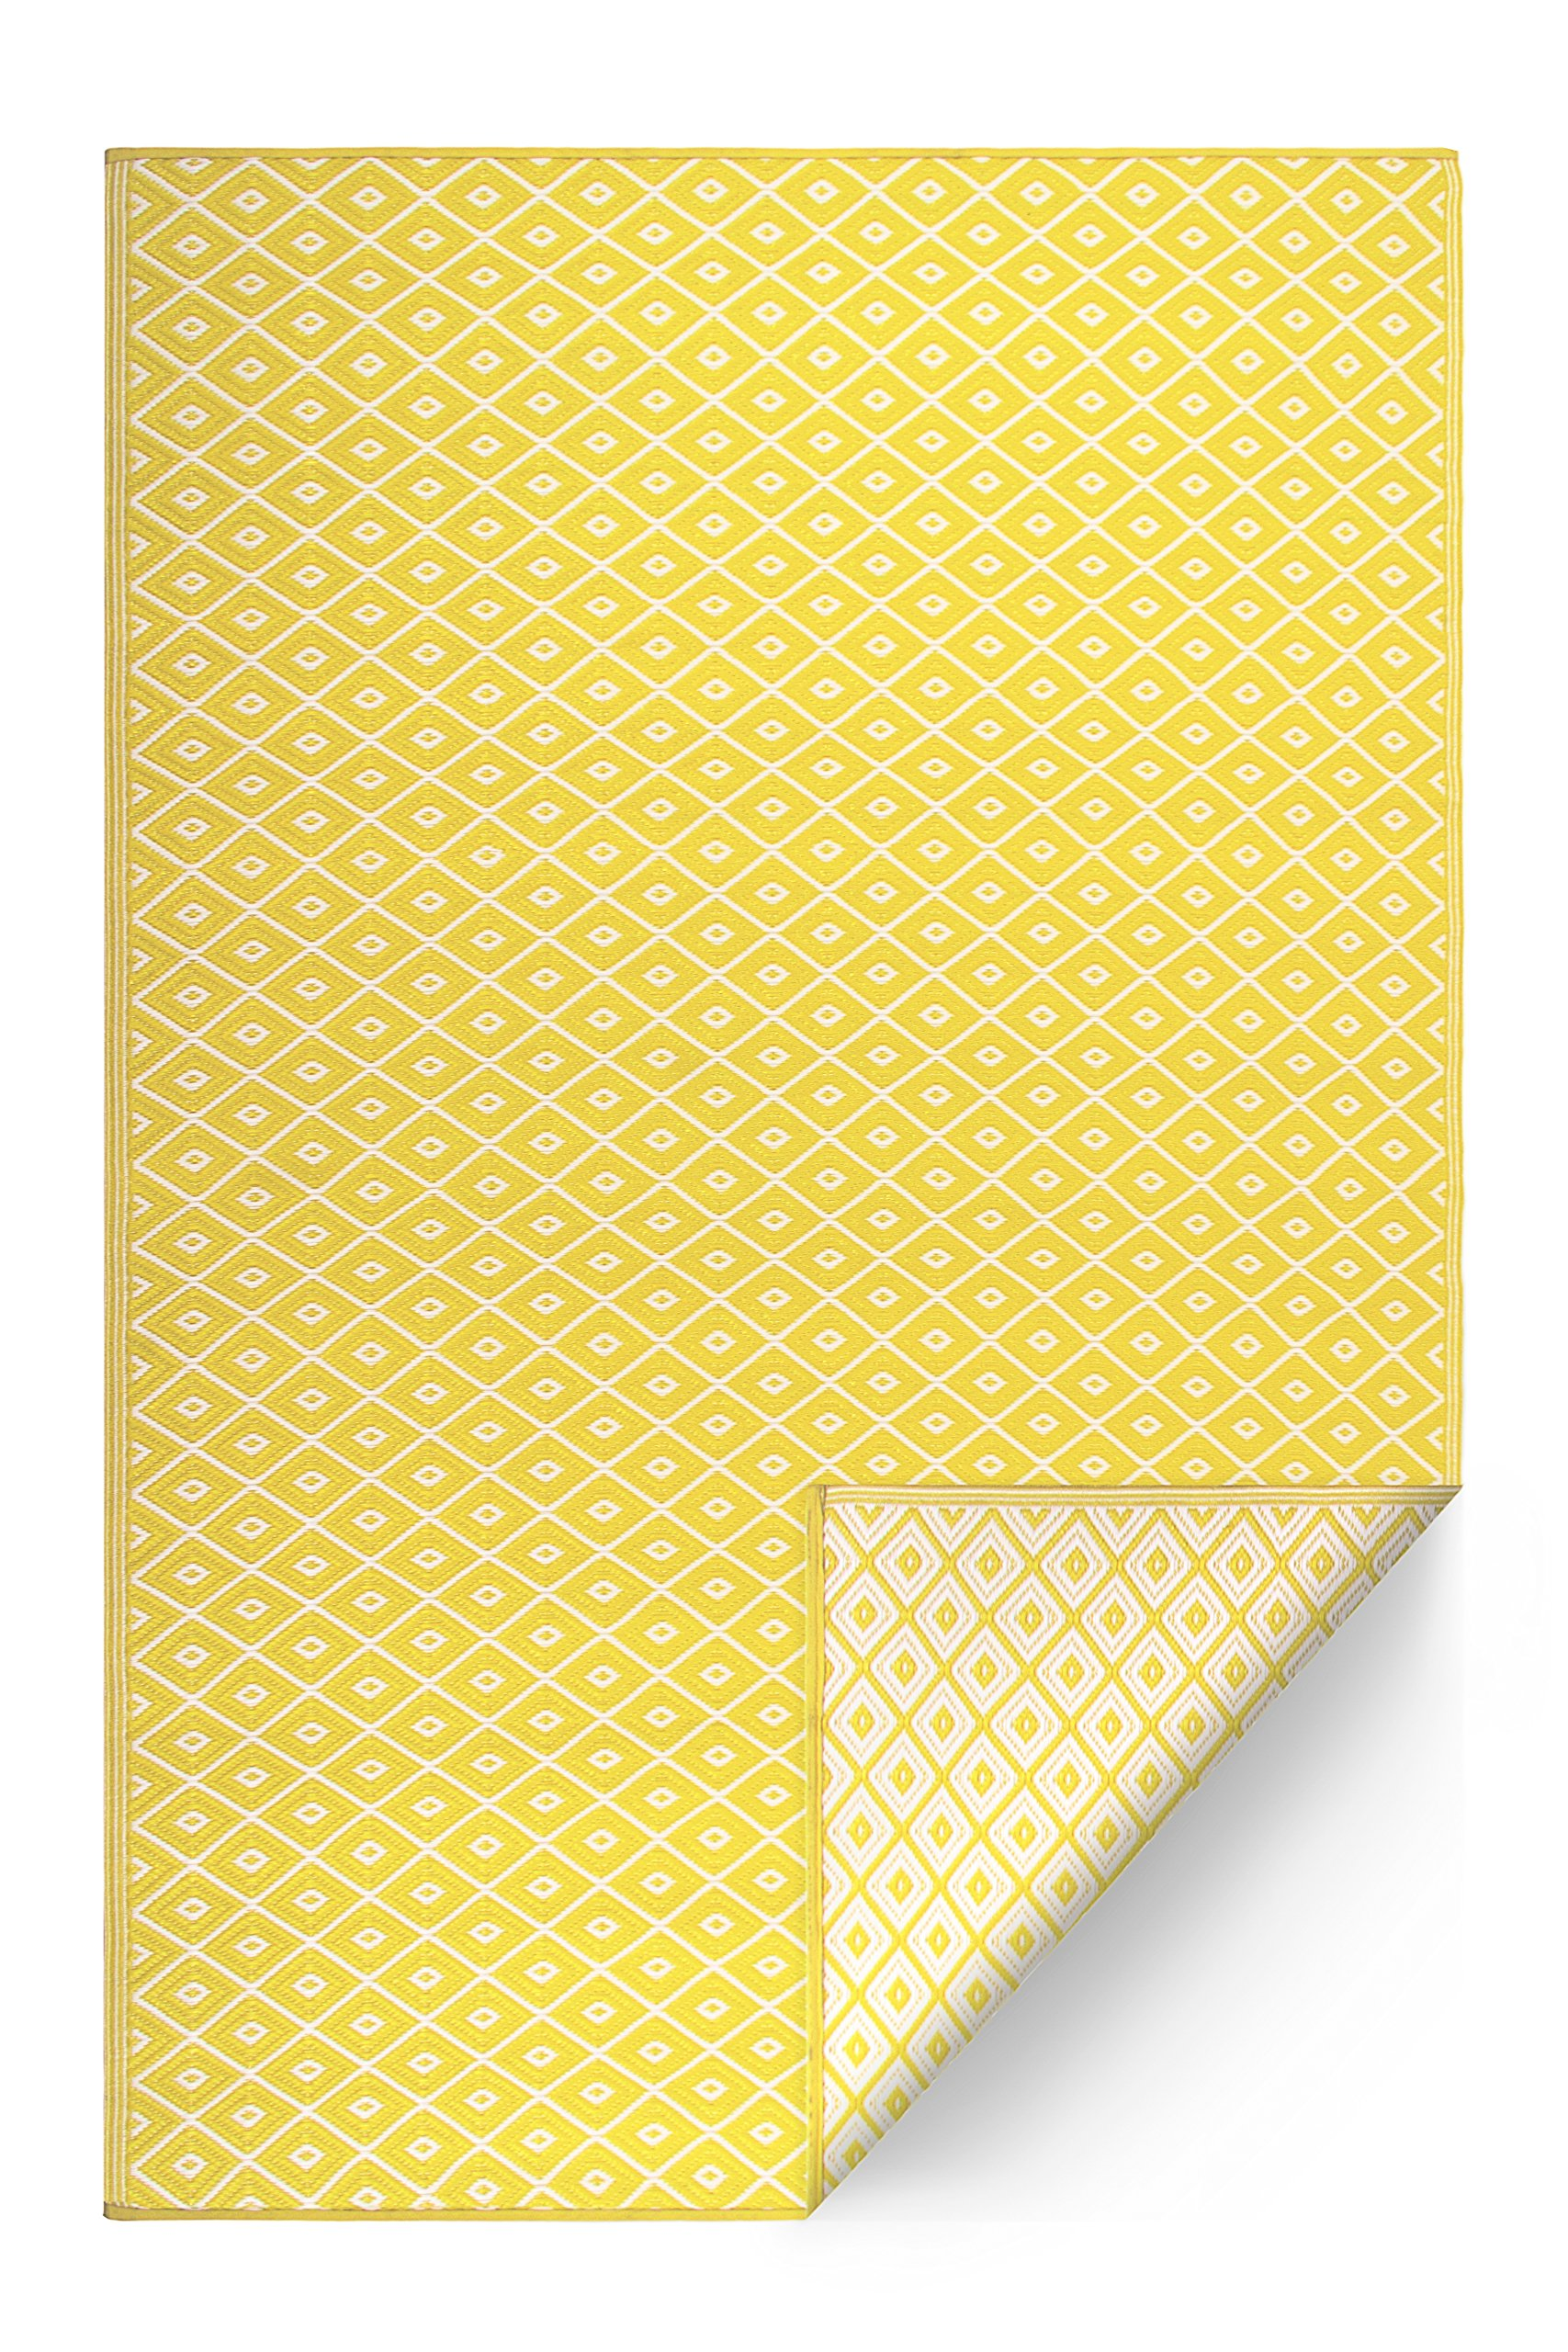 FH Home Indoor/Outdoor Recycled Plastic Floor Mat/Rug - Reversible - Weather & UV Resistant - GM16 - Yellow (5 ft x 8 ft) by FH Home (Image #2)